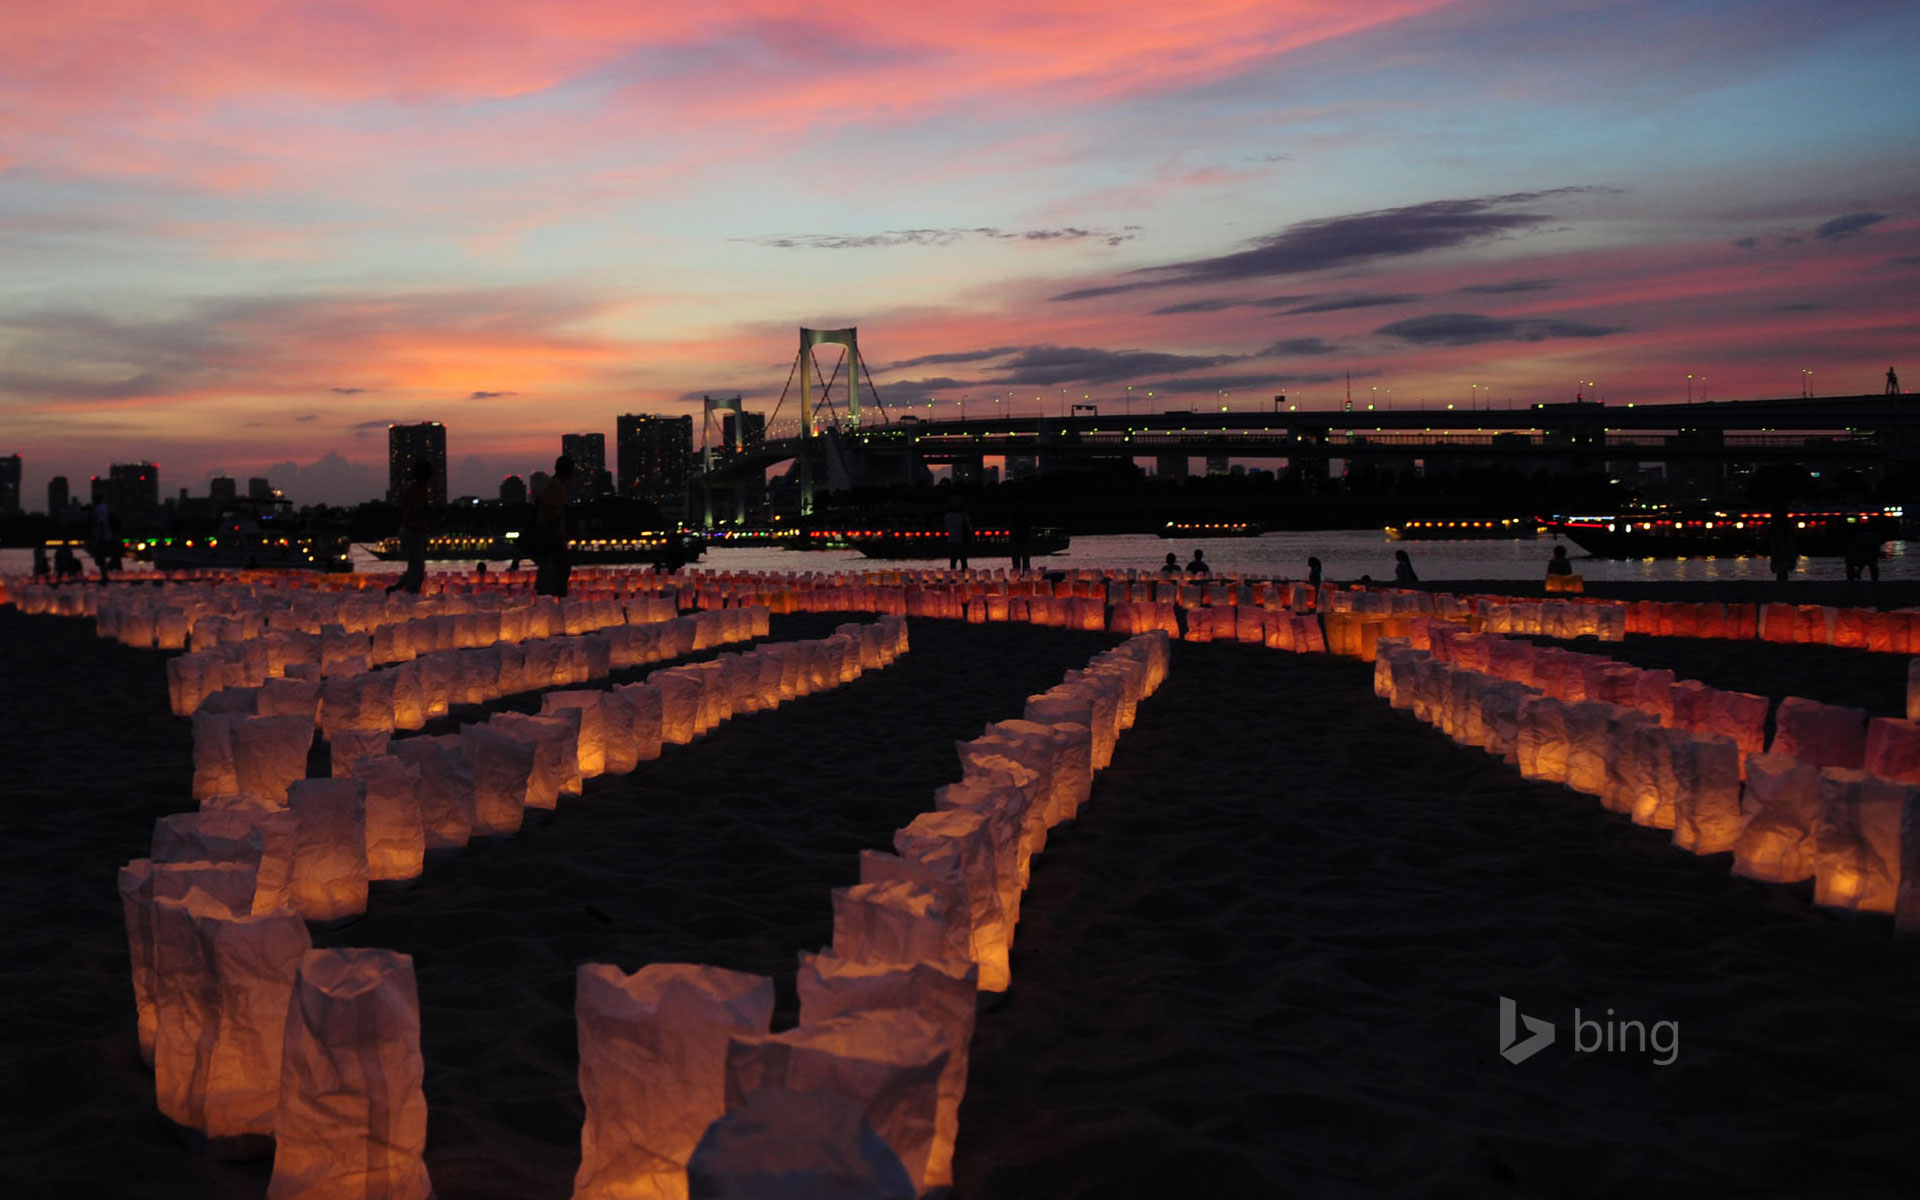 Candles line the beach at Odaiba Marine Park for Marine Day, Tokyo, Japan